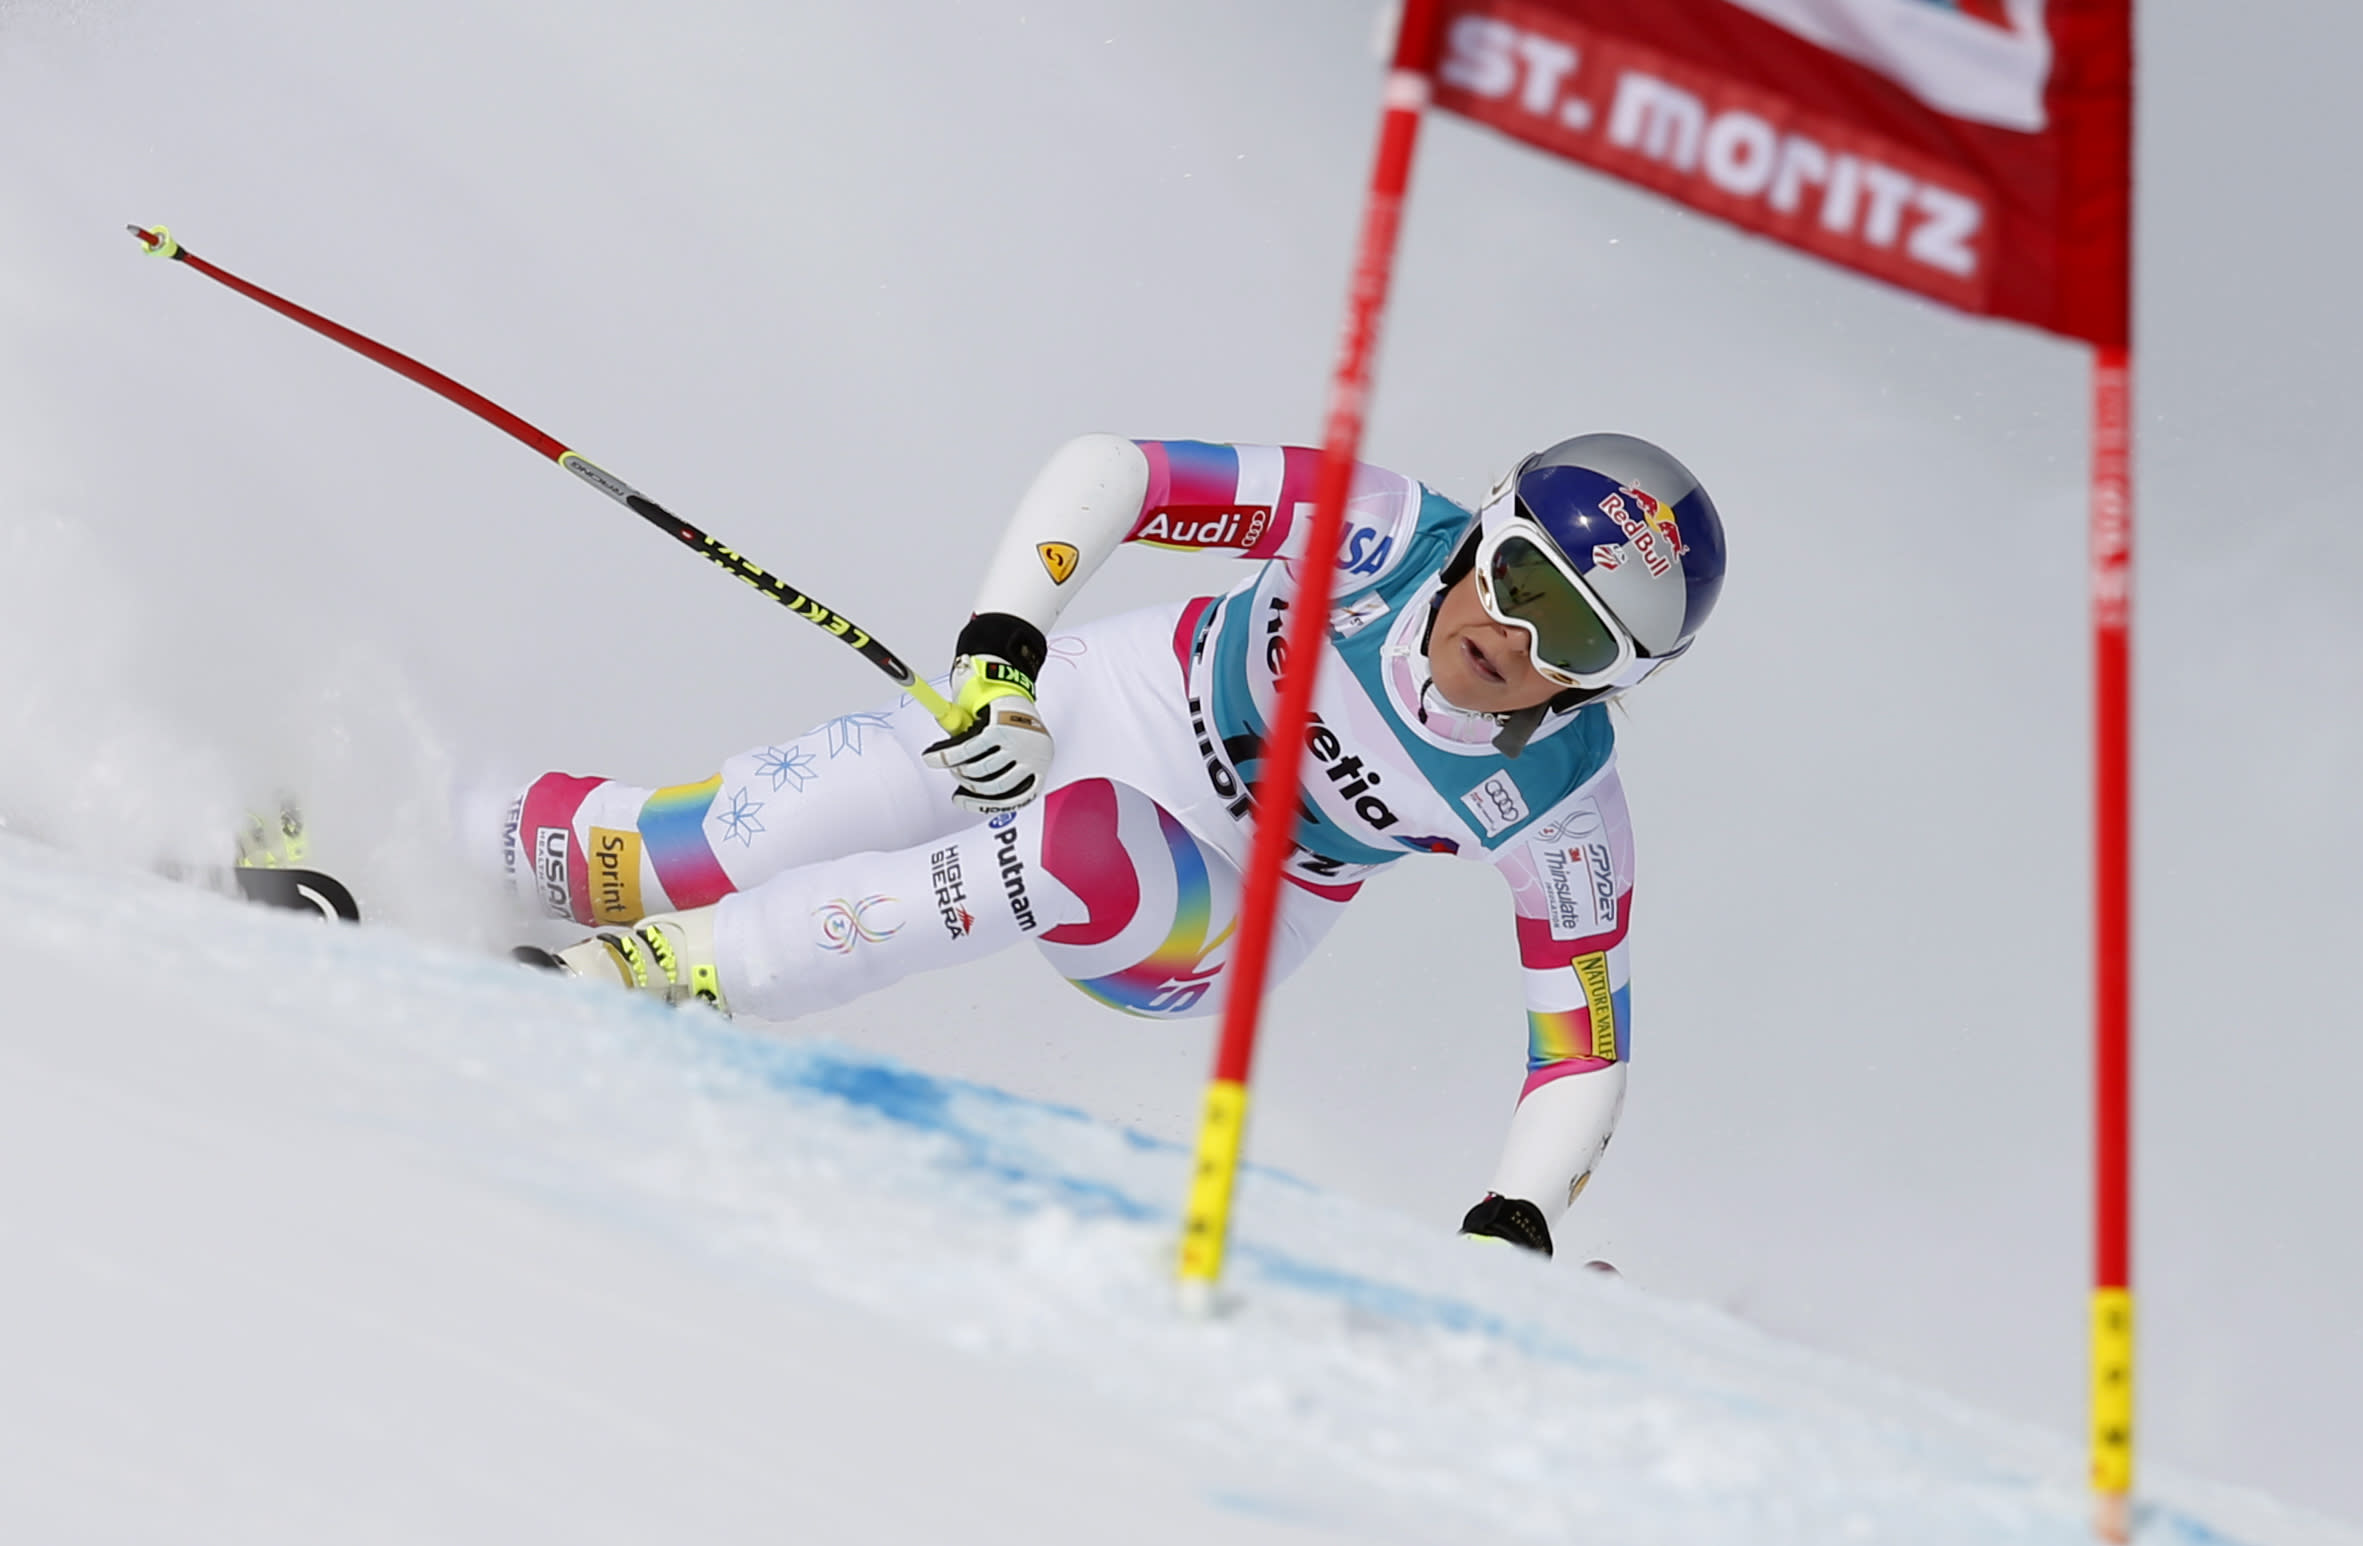 Lindsey Vonn heads home for world champs in winning shape